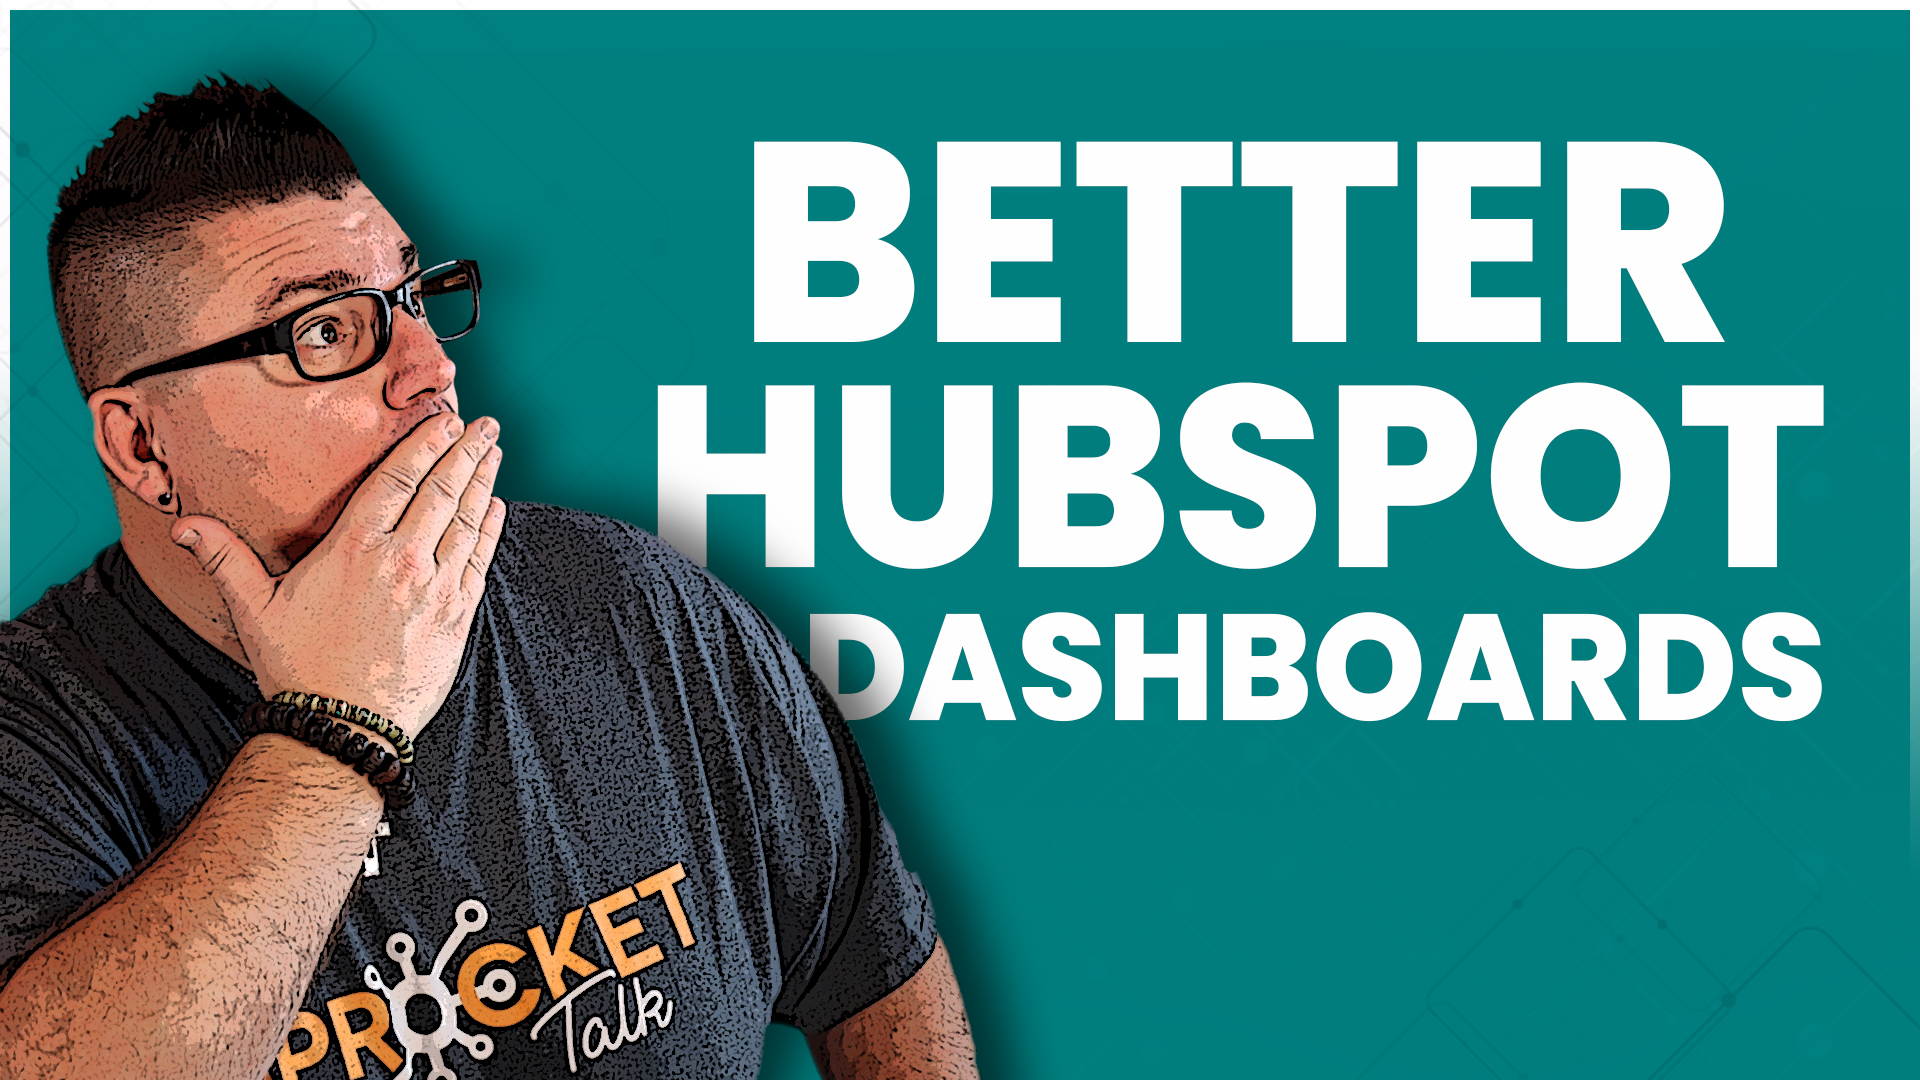 Tutorial - Better HubSpot Dashboards